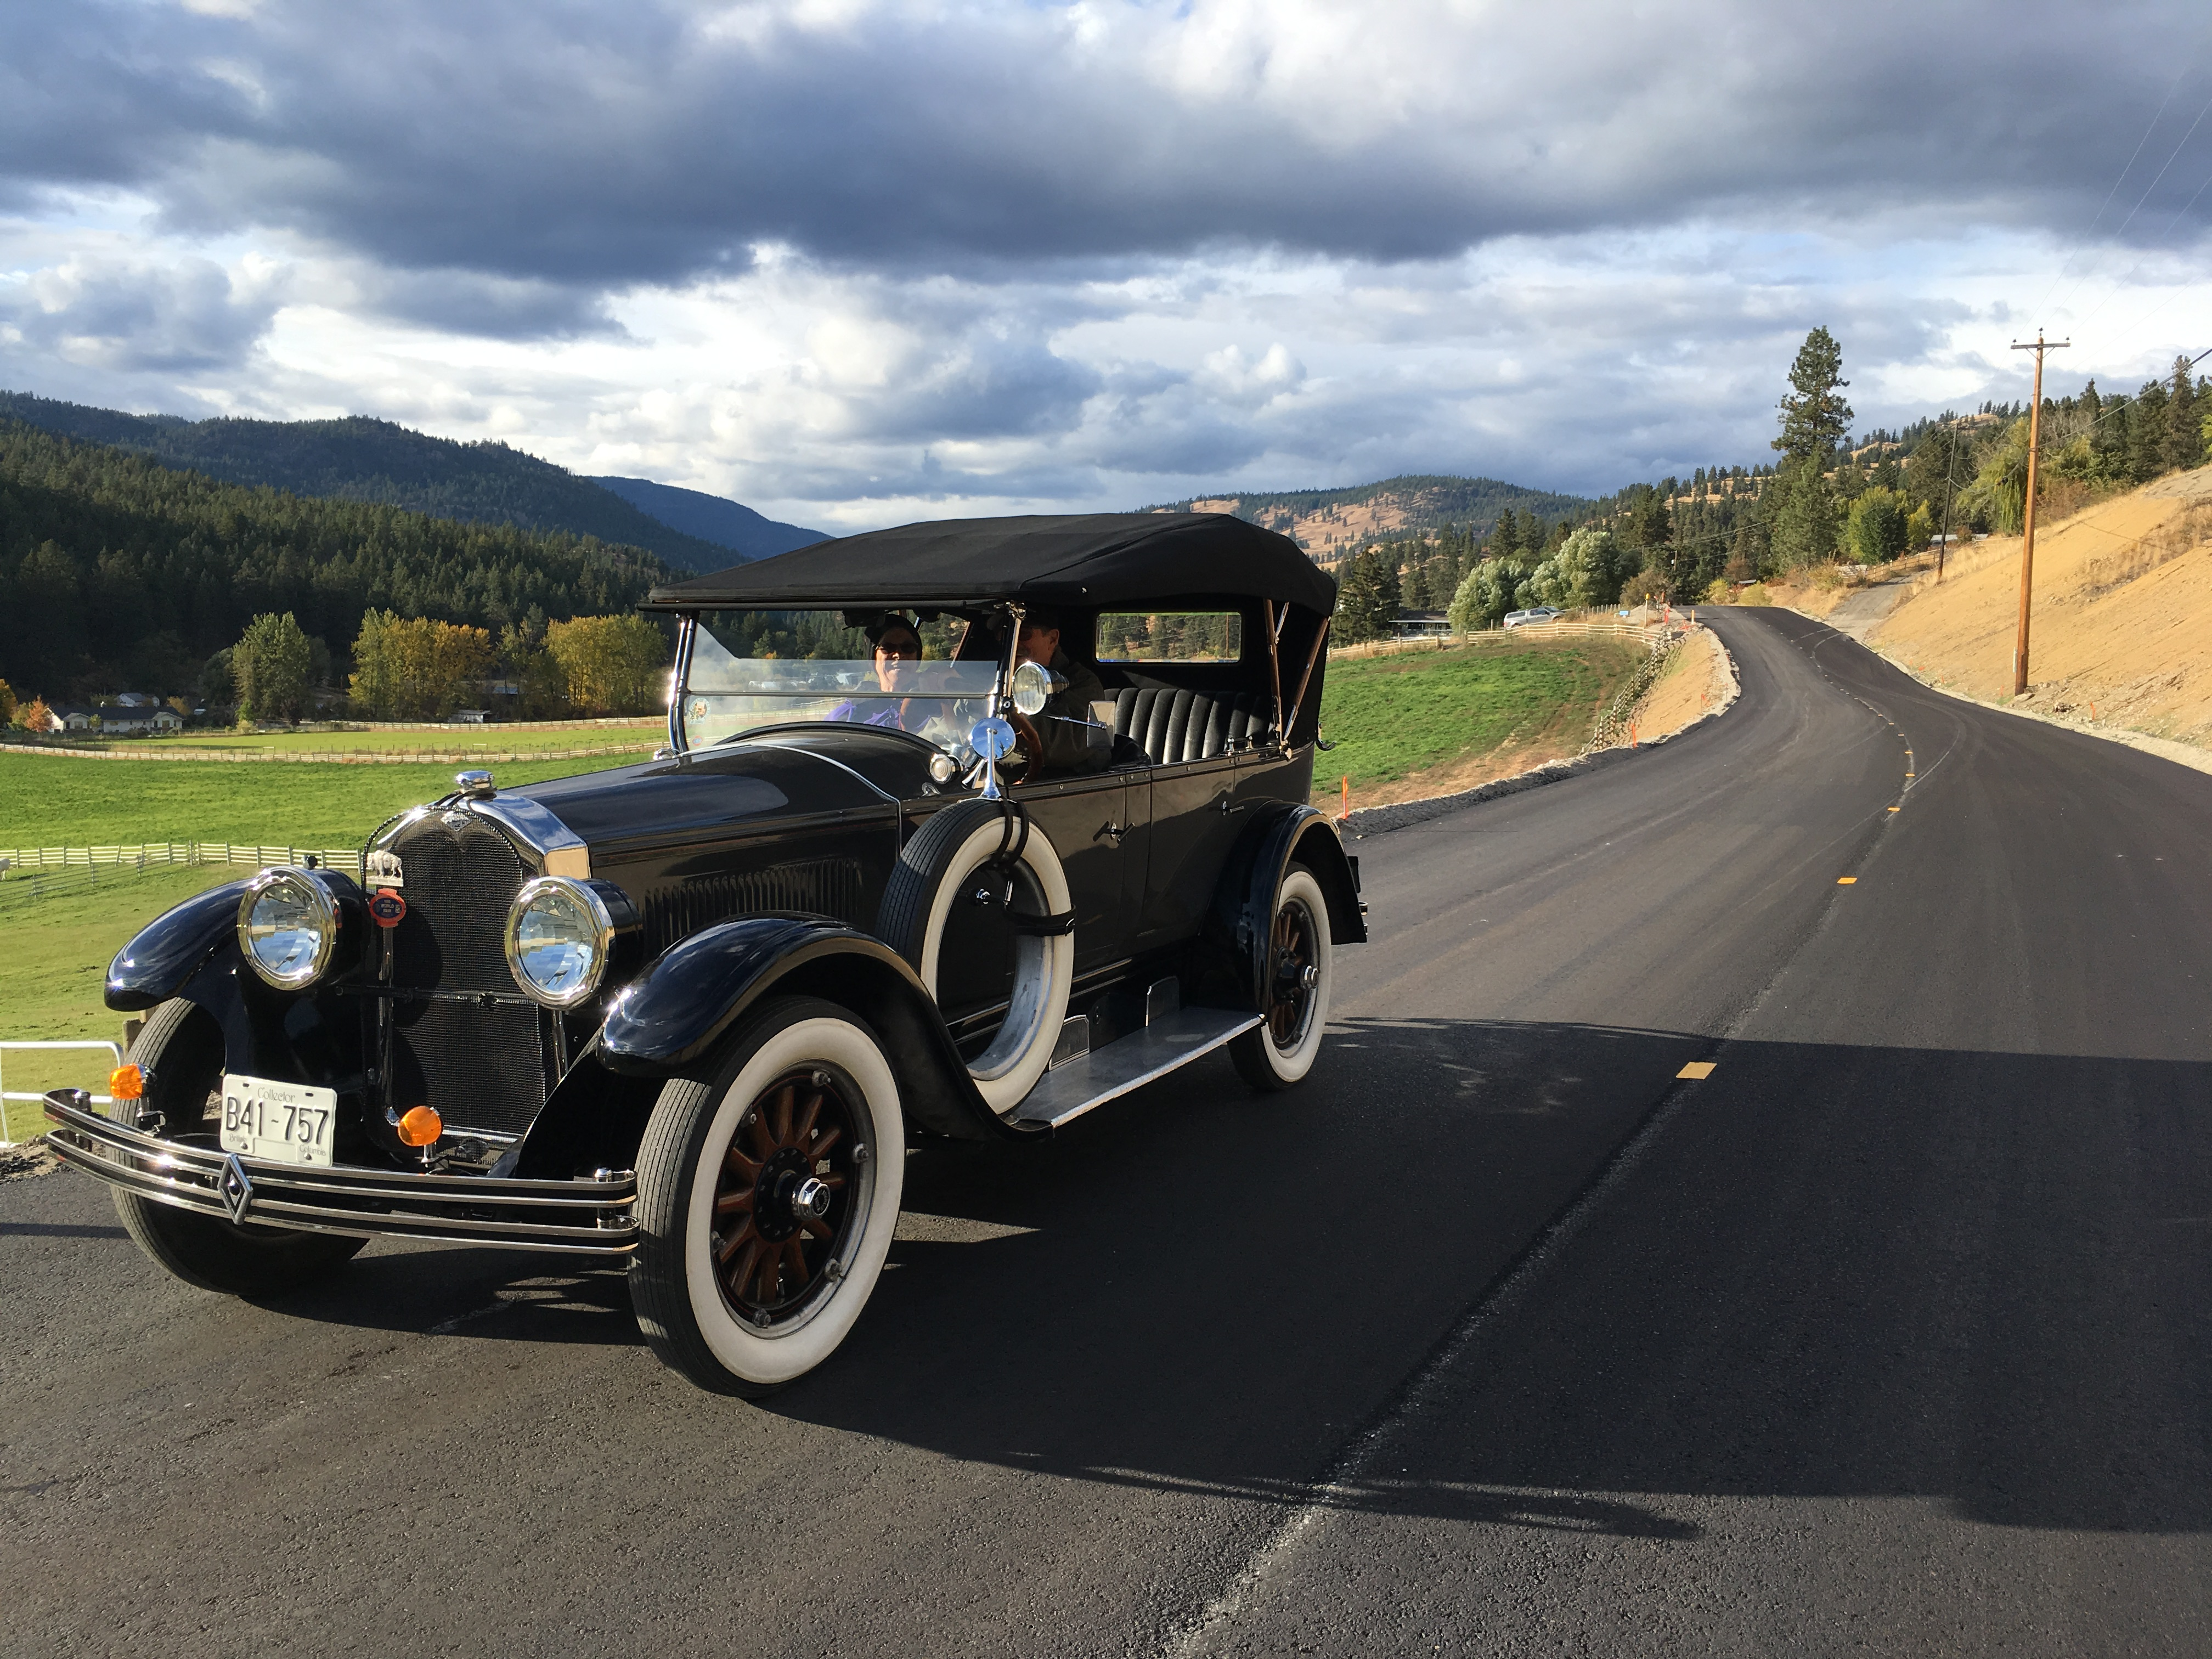 first drive this year - Buick - Pre War - Antique Automobile Club of ...